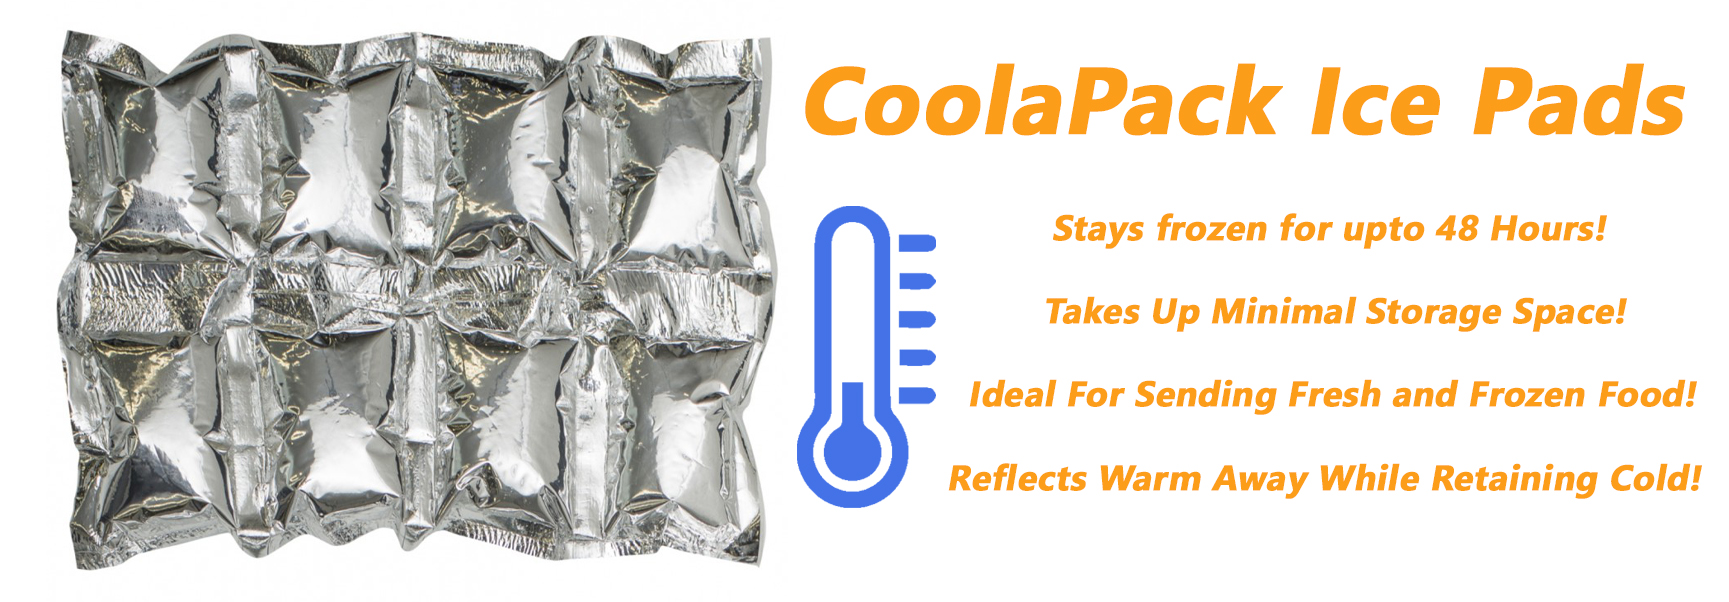 CoolaPacks Ice Pads - Insulate It